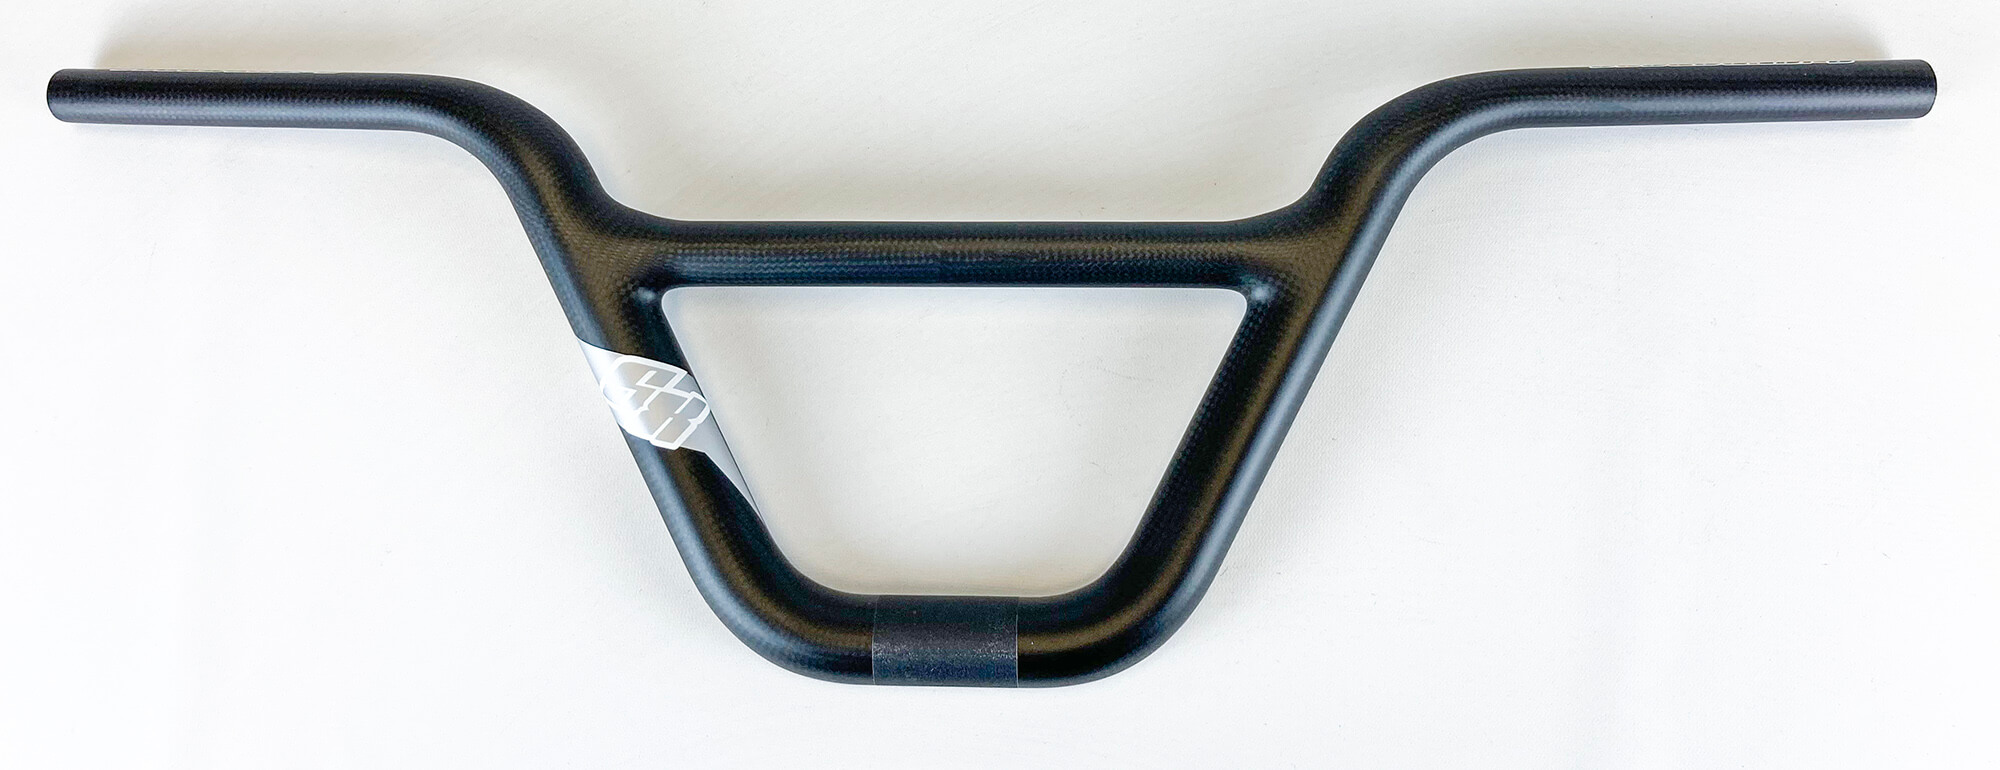 Supercross BLK Bars Black